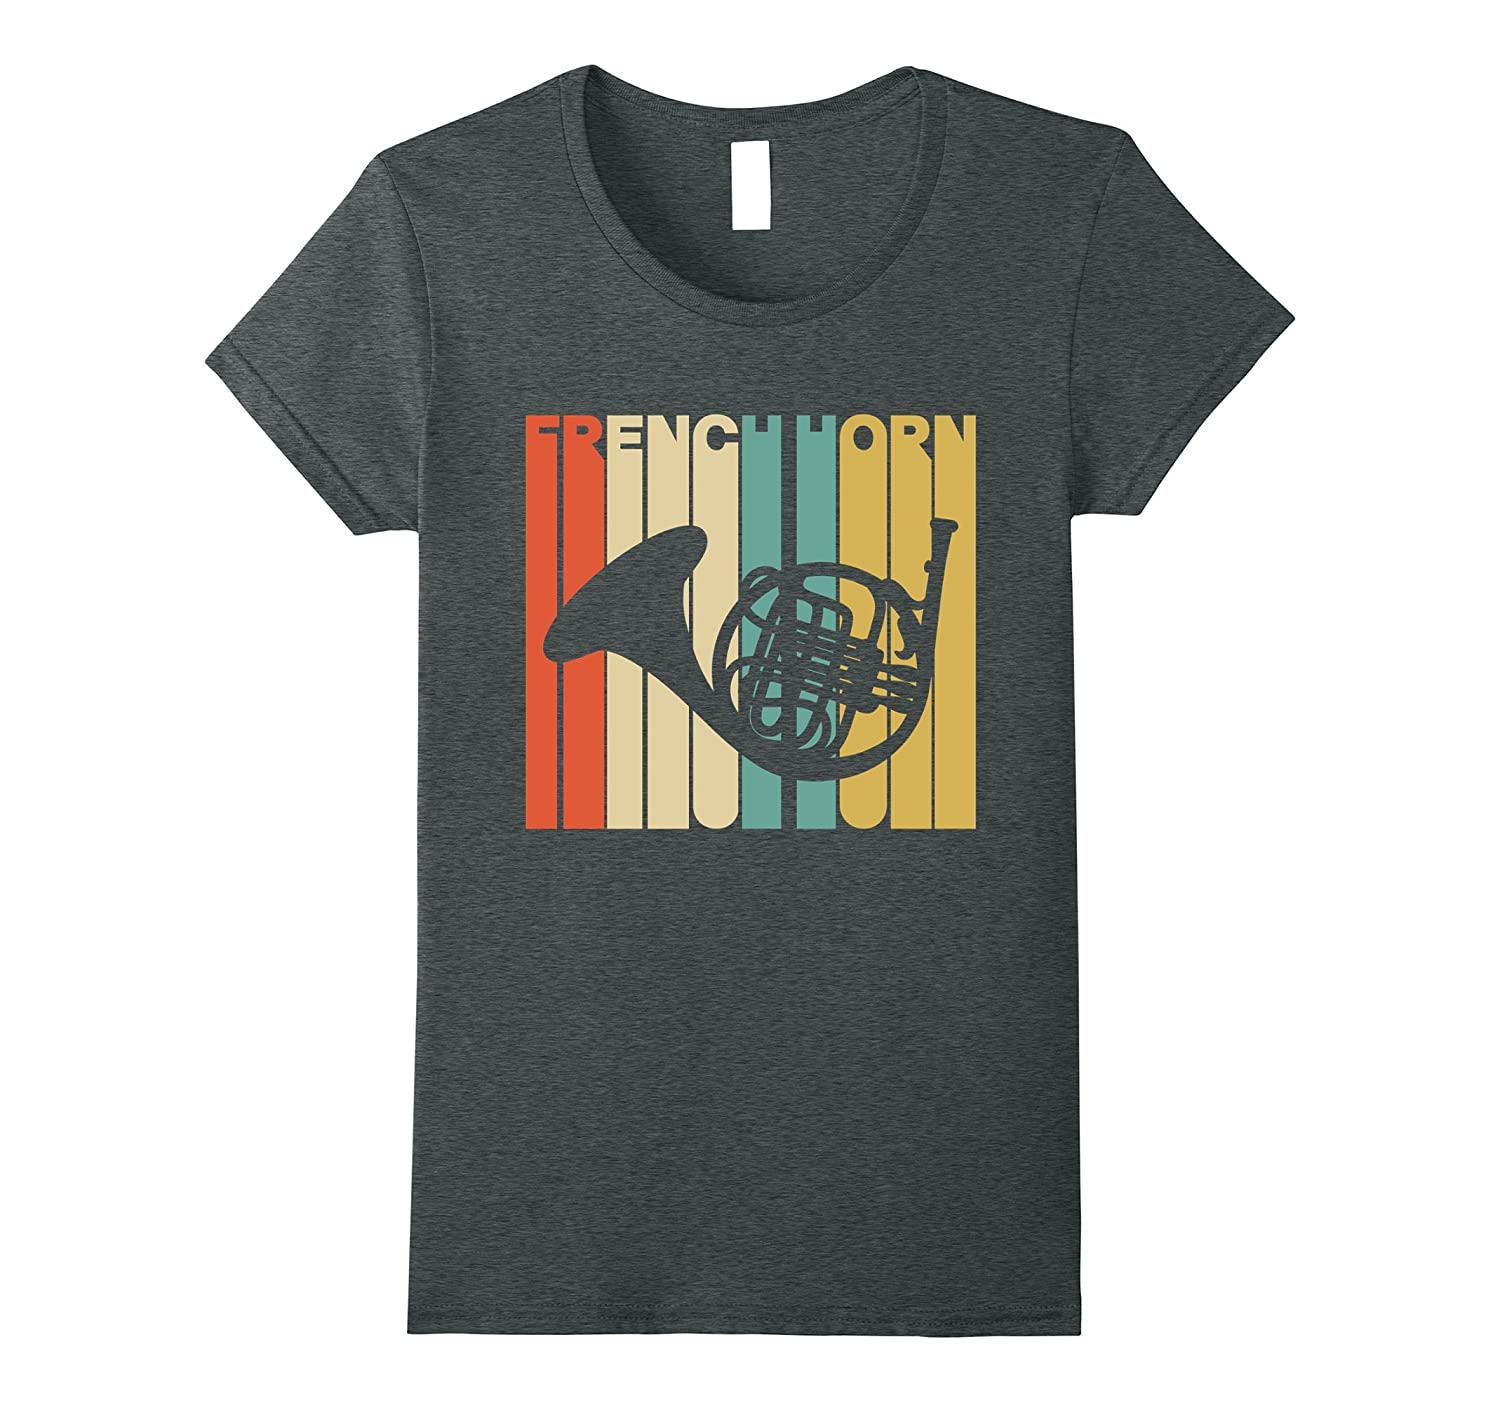 Vintage Style French Horn Silhouette T-Shirt